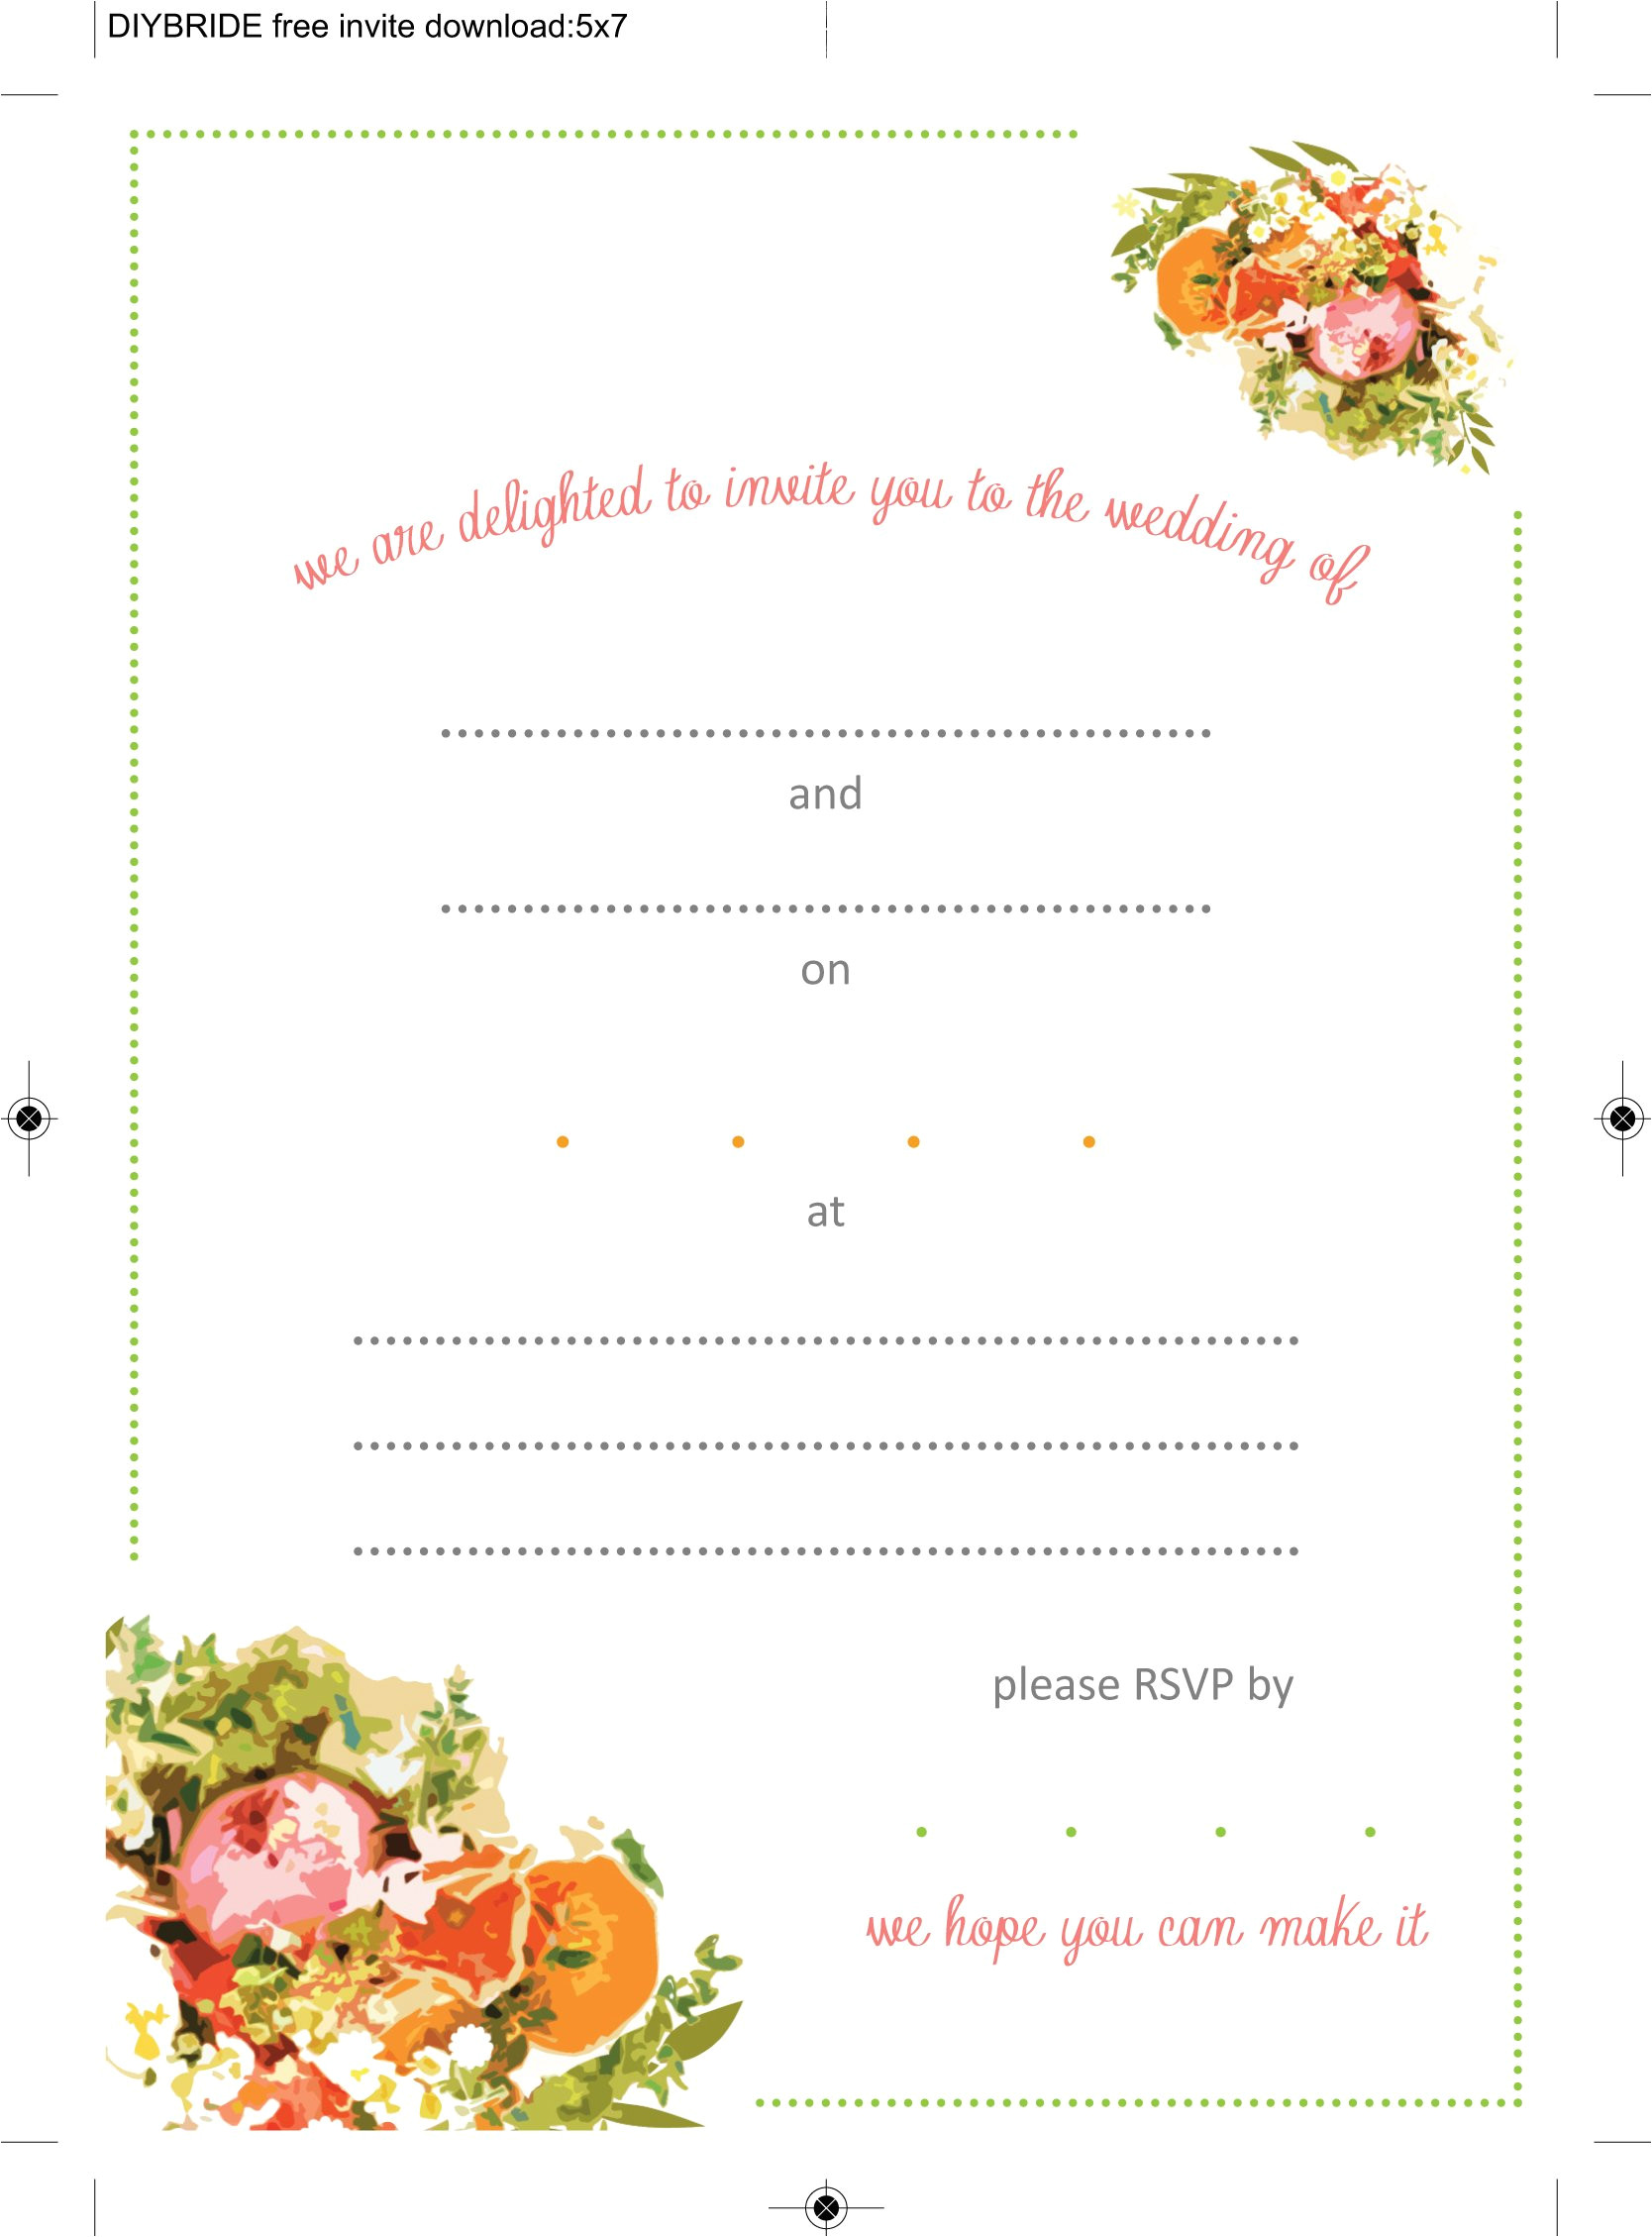 Blank Wedding Invitation Card Design Template Free Download Wedding Invitation Templates that are Cute and Easy to